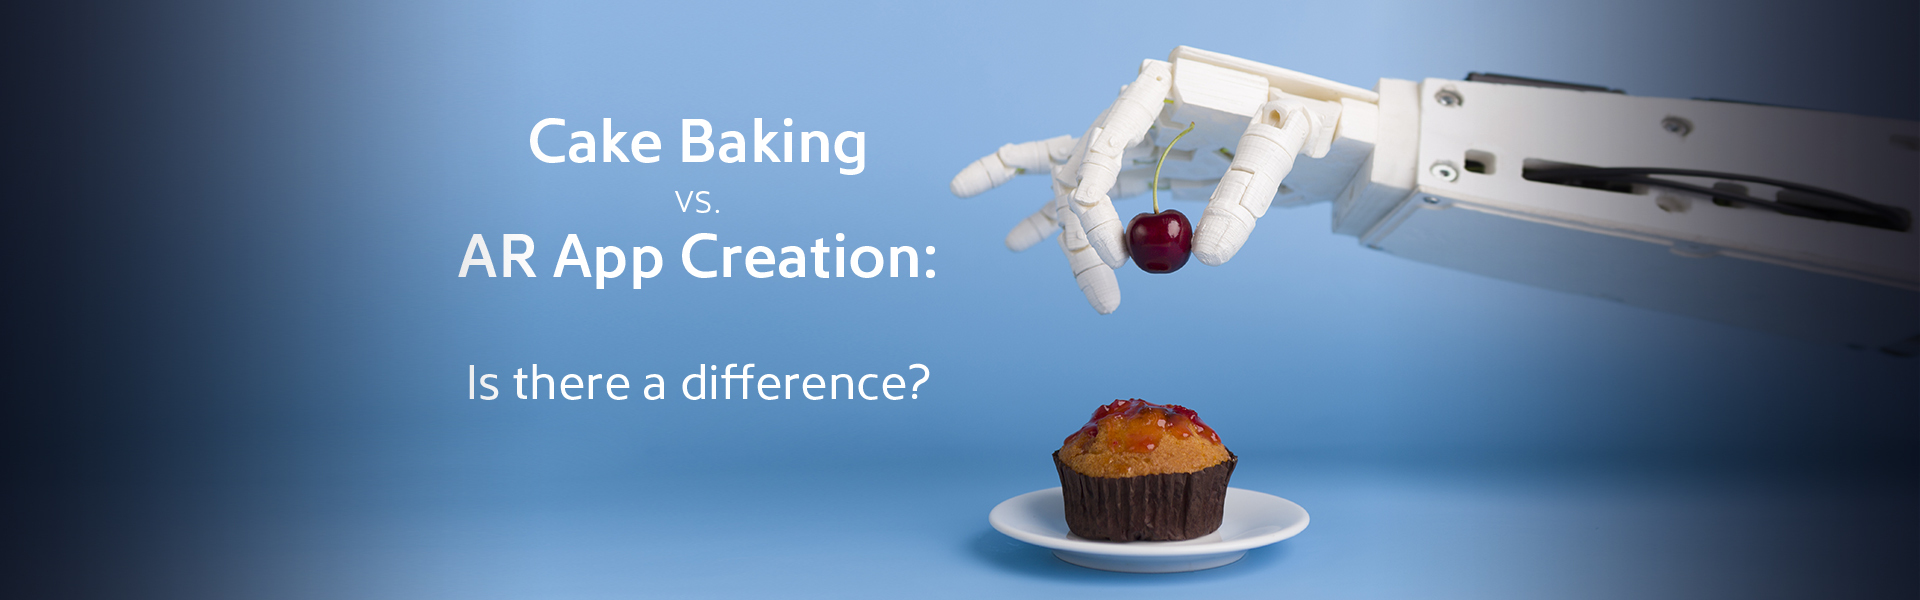 Cake Baking vs. AR App Creation: Is there a difference?